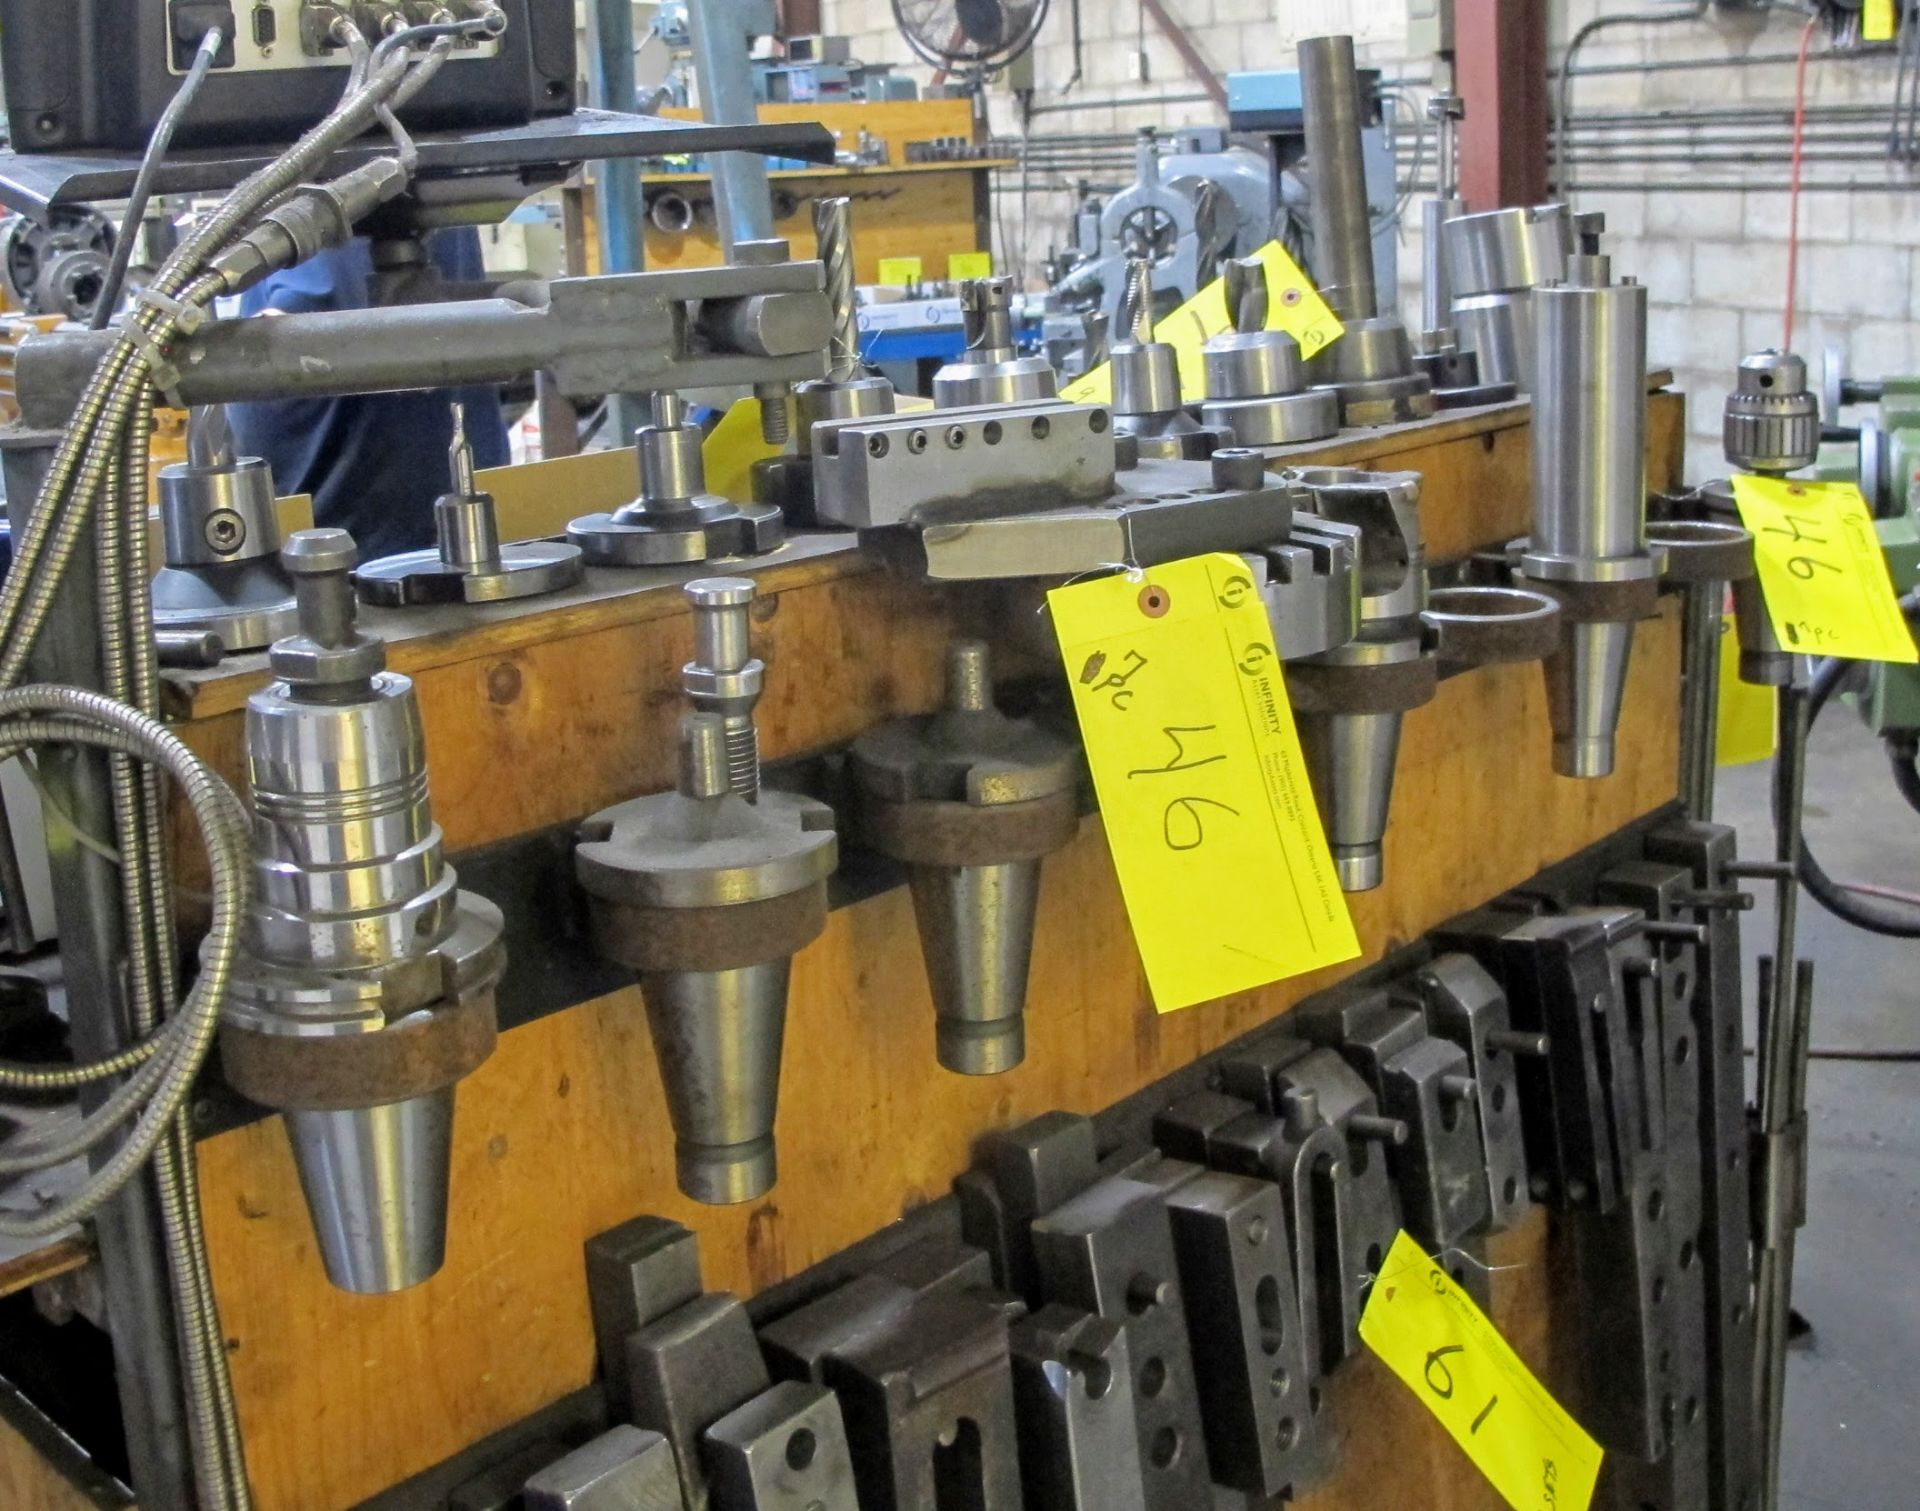 Lot 46 - LOT OF 7 CAT 50 TOOL HOLDERS W/ATTACHMENTS